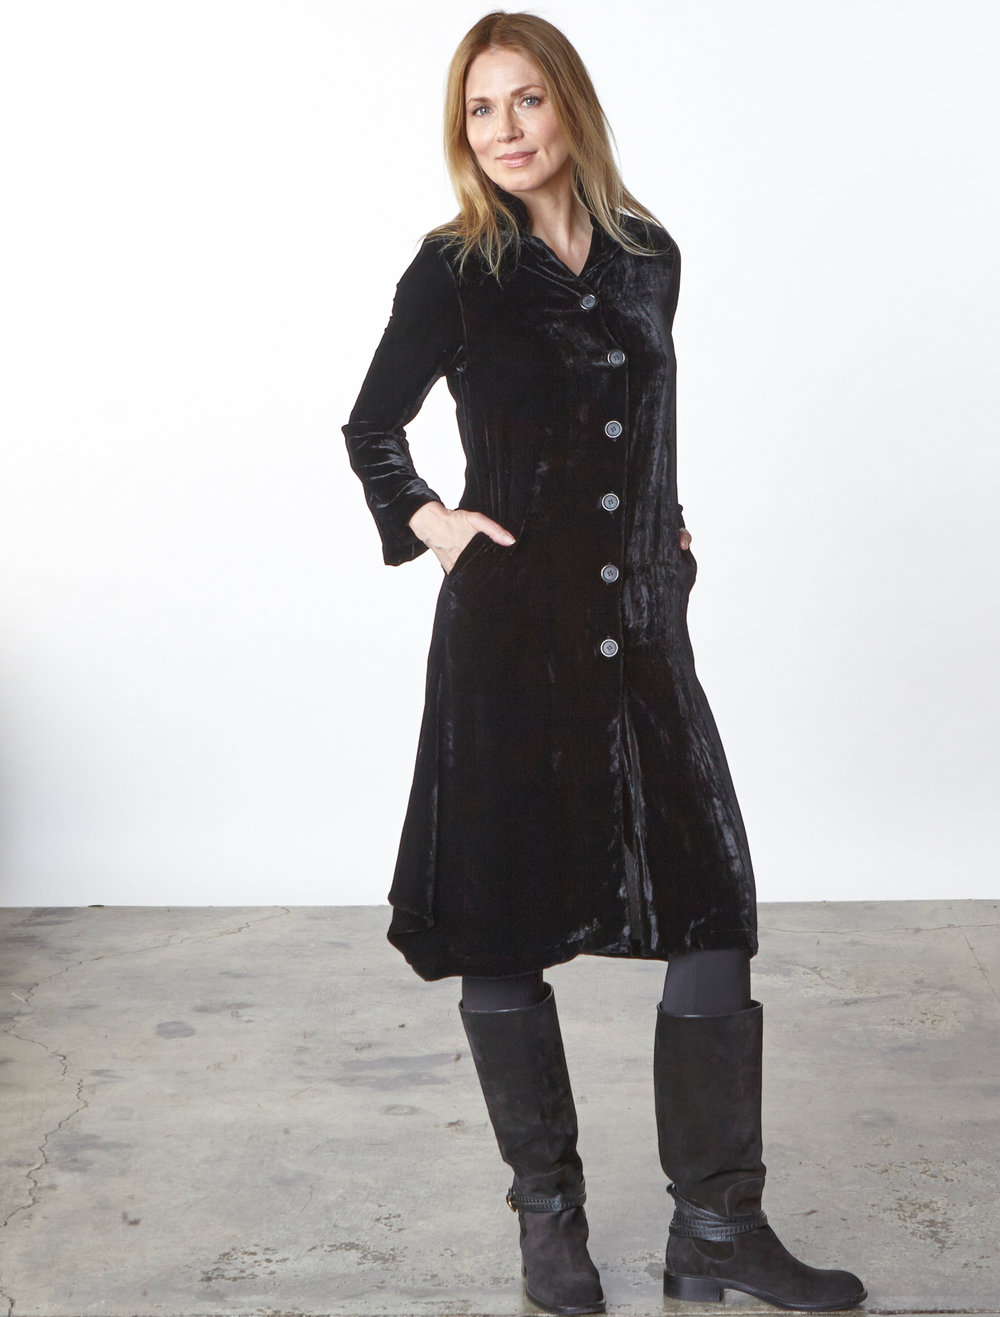 Llewellyn Jacket in Black Italian Viscose/Silk Velvet, Legging in Black Italian Microfiber Jersey